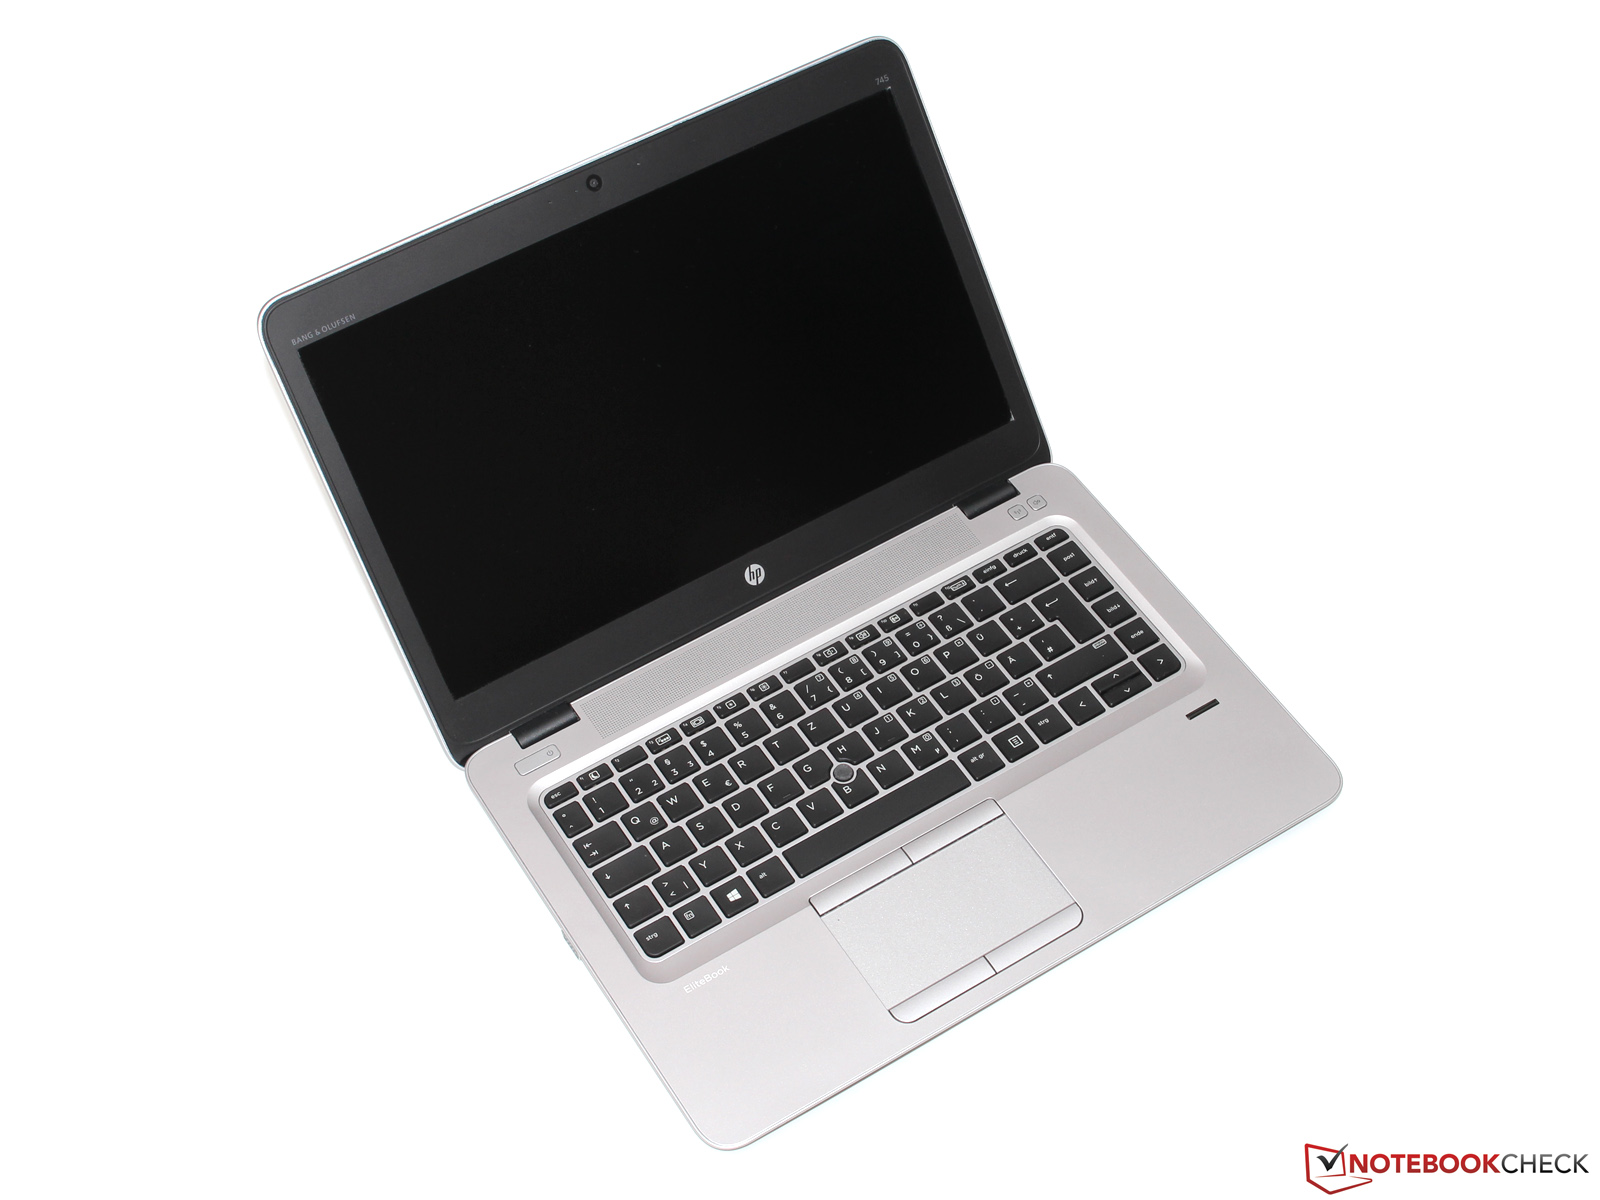 HP EliteBook 750 G1 Broadcom WLAN Windows 8 Driver Download